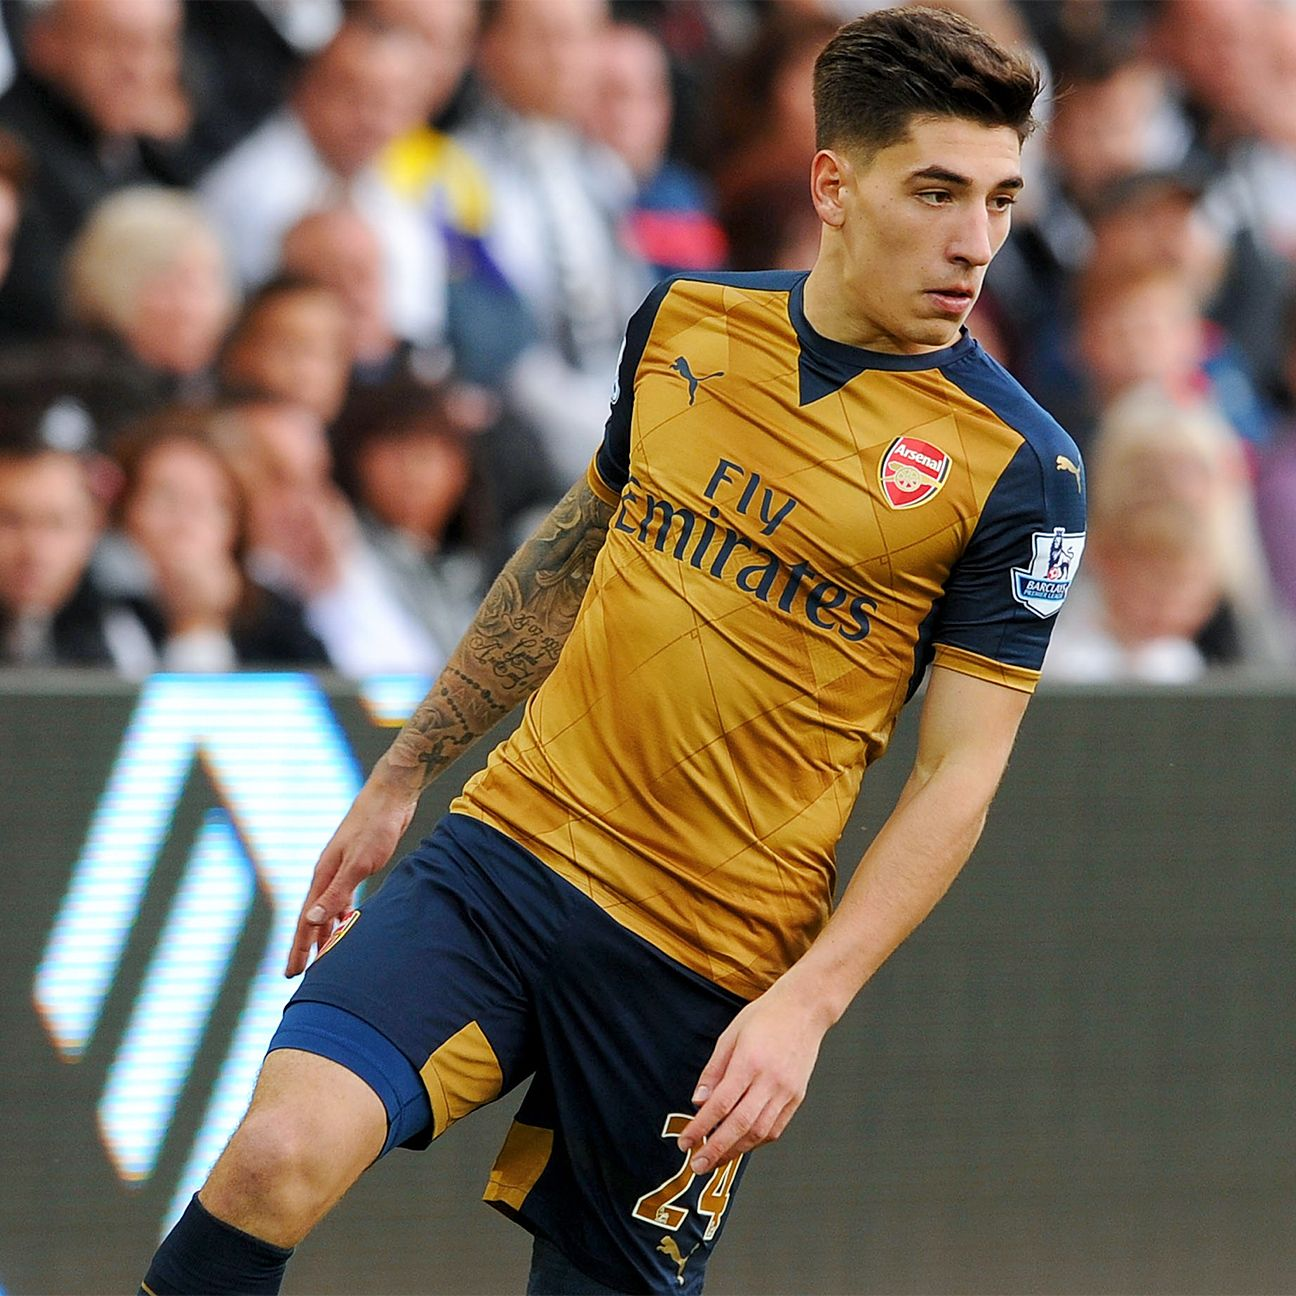 Hector Bellerin is part of an Arsenal back line that is showing improvement with each week.